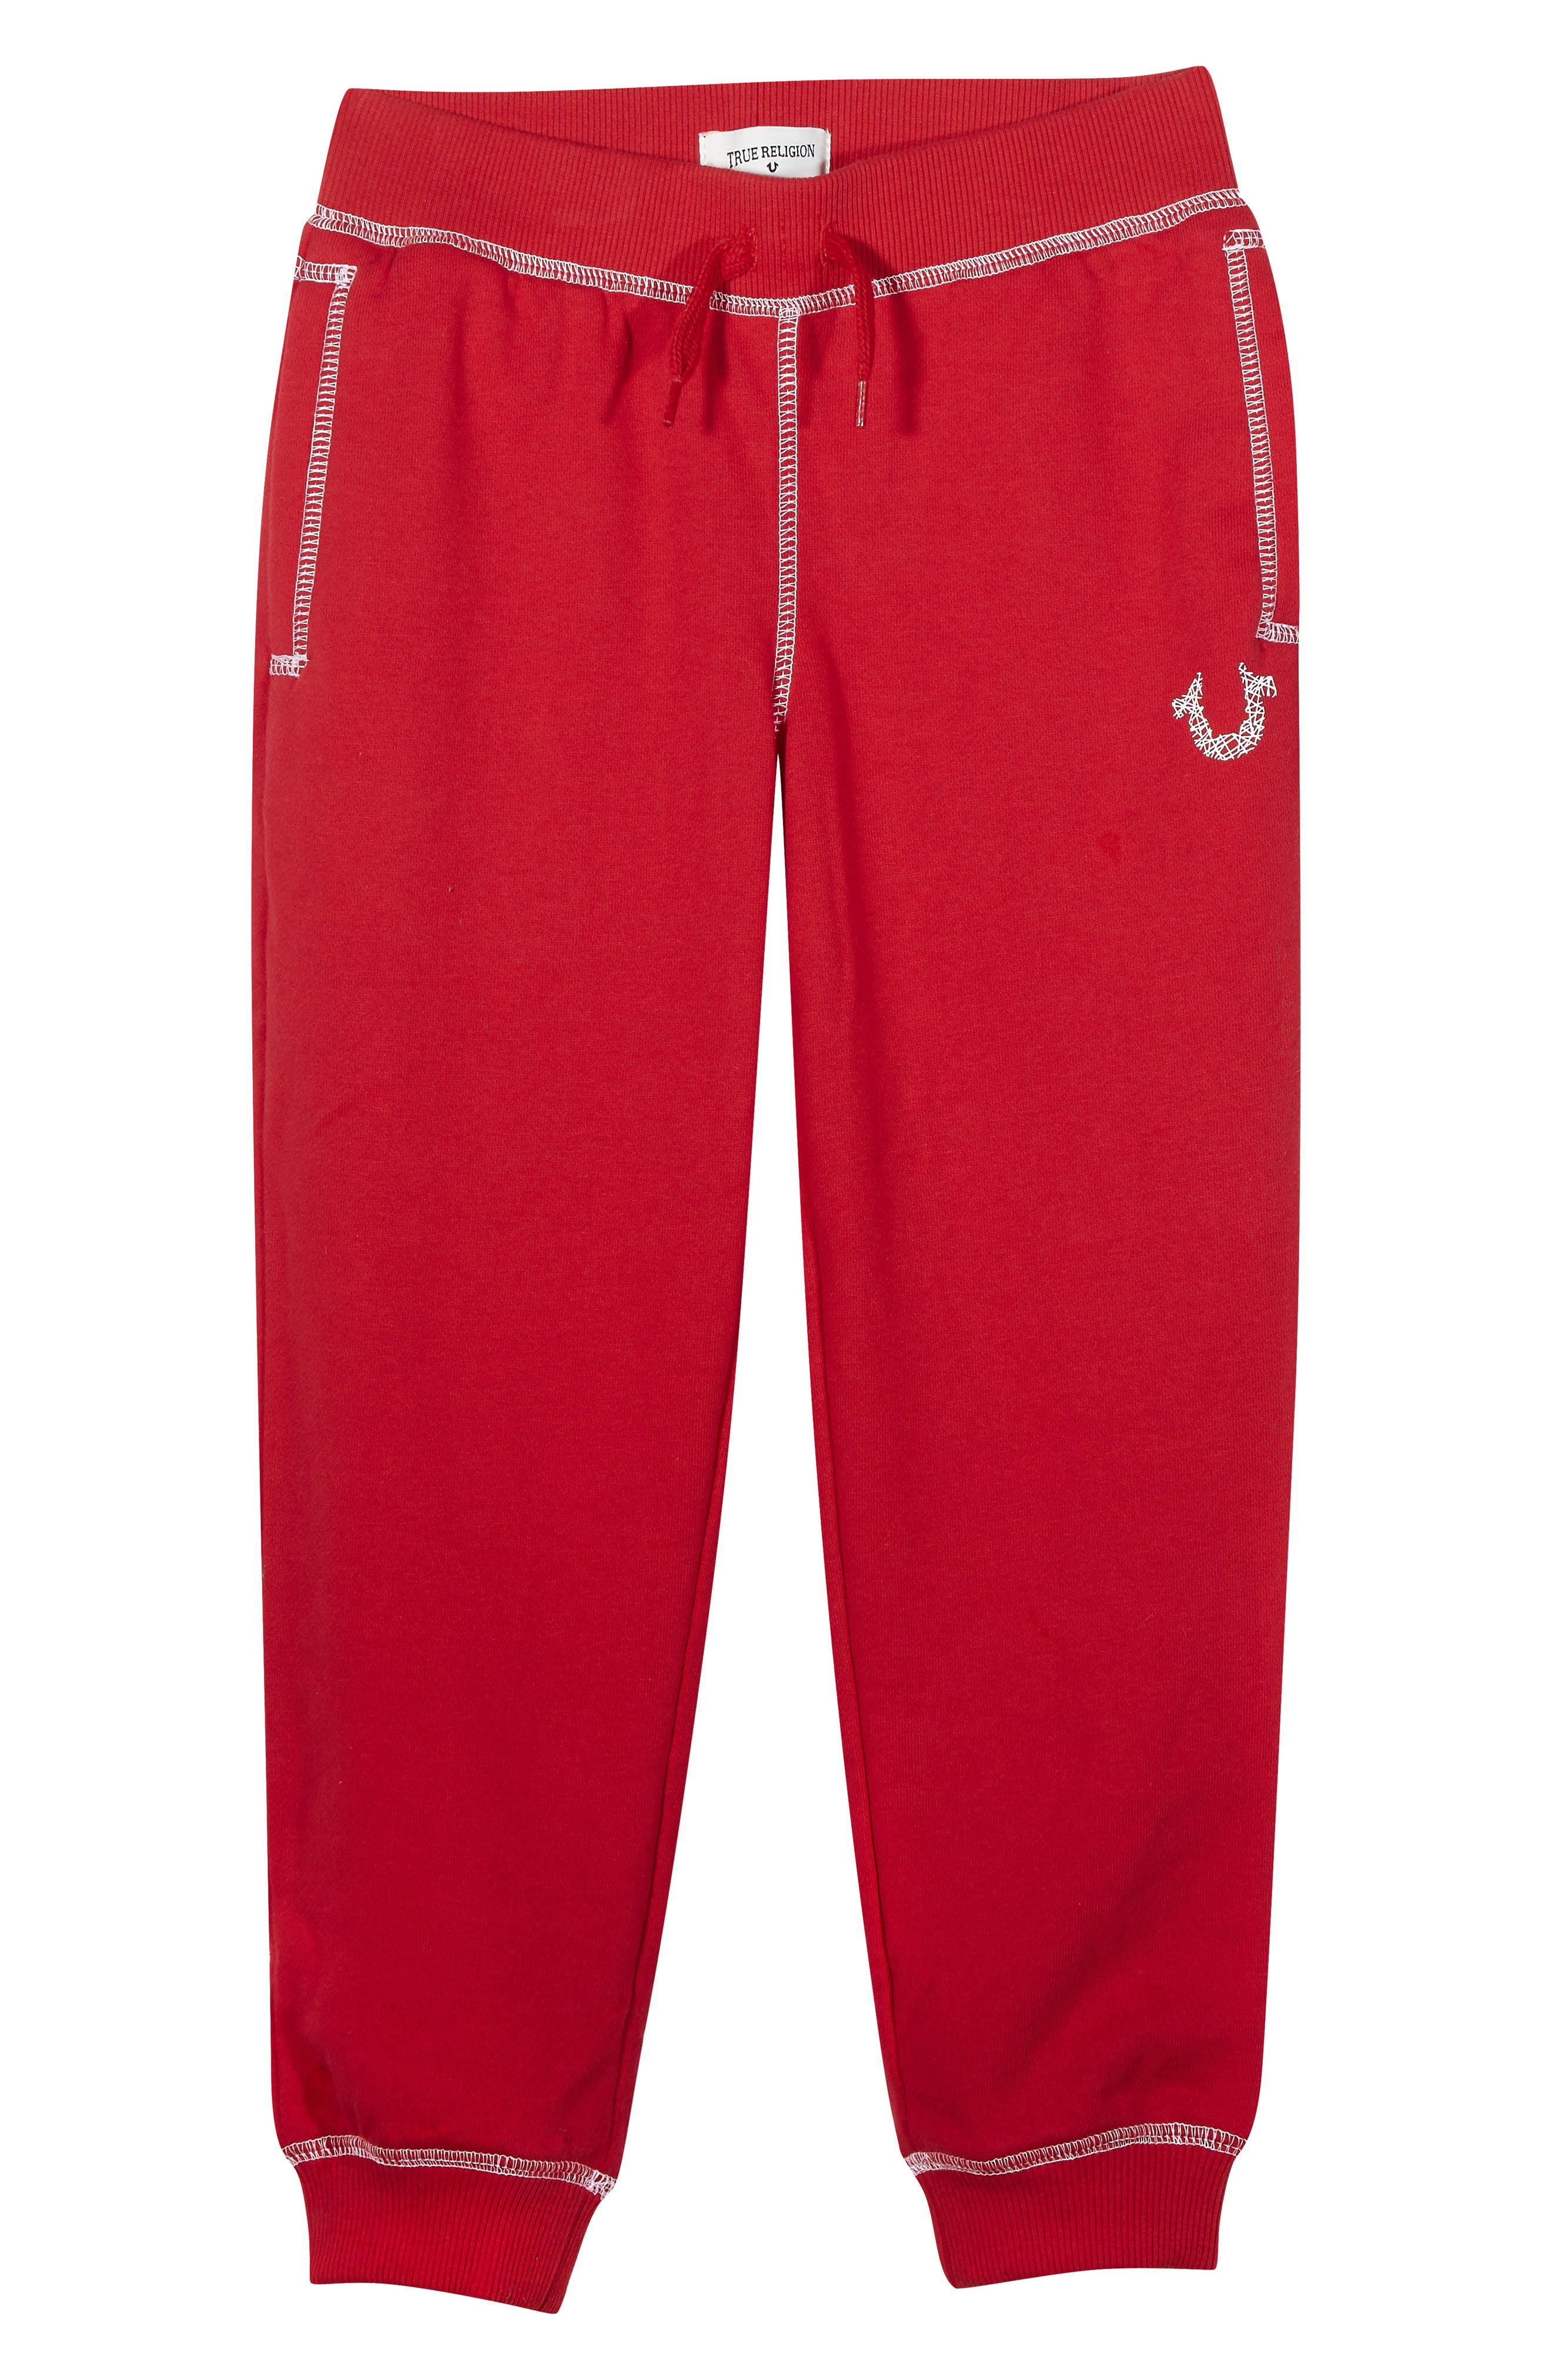 Shoestring Sweatpants,                         Main,                         color, Bright Red